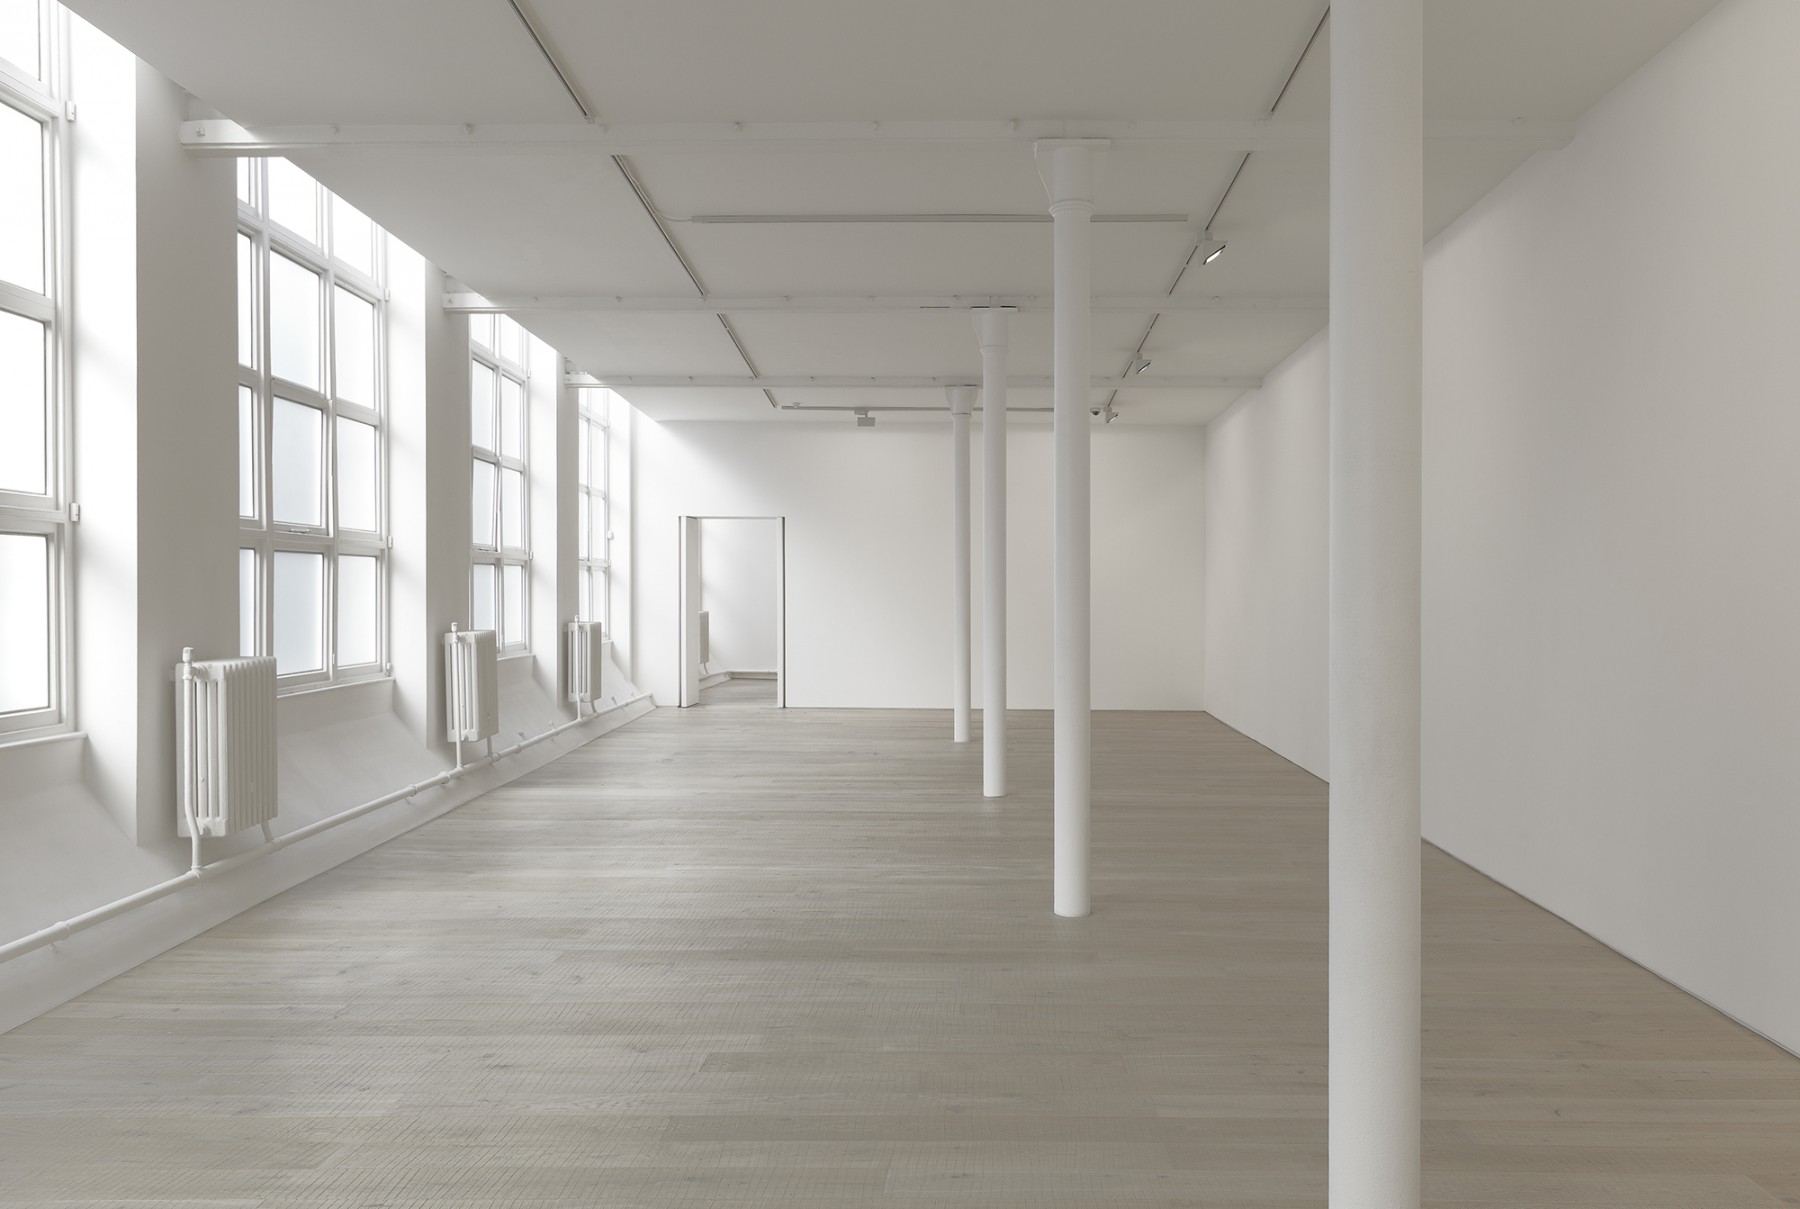 new-Pace-Gallery-London-soho-2011-contemporary-art-international-exhibition-space-installation-Sol-Le-Witt-Wall-Drawing-343-Jamie-Fobert-Architects-3